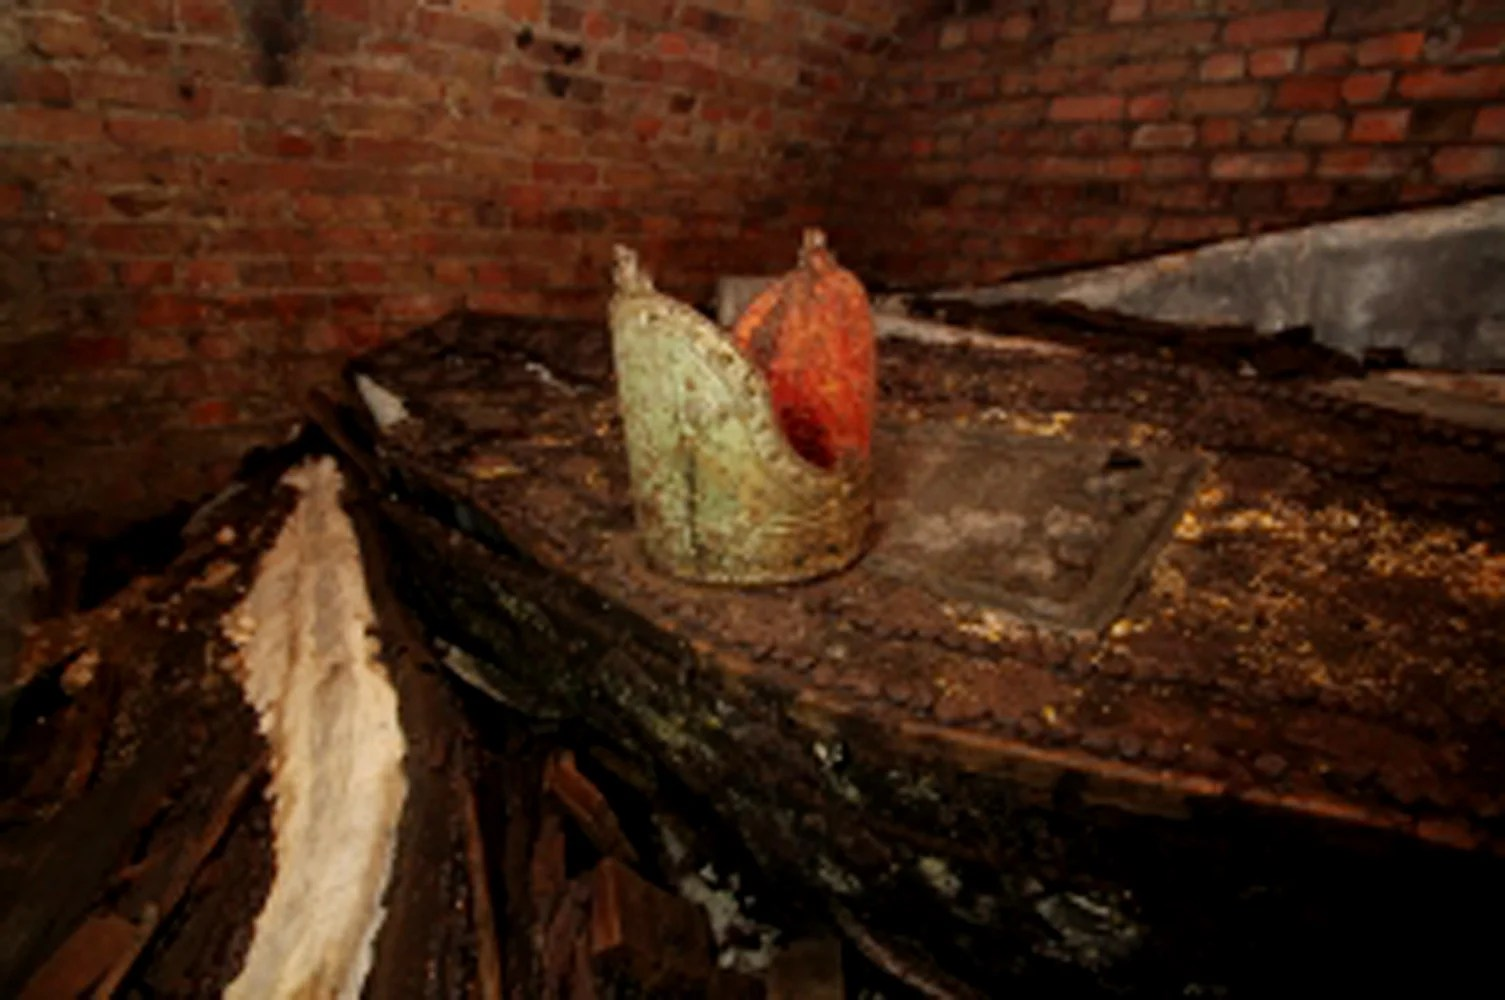 Secret tomb contains remains of 5 London archbishops